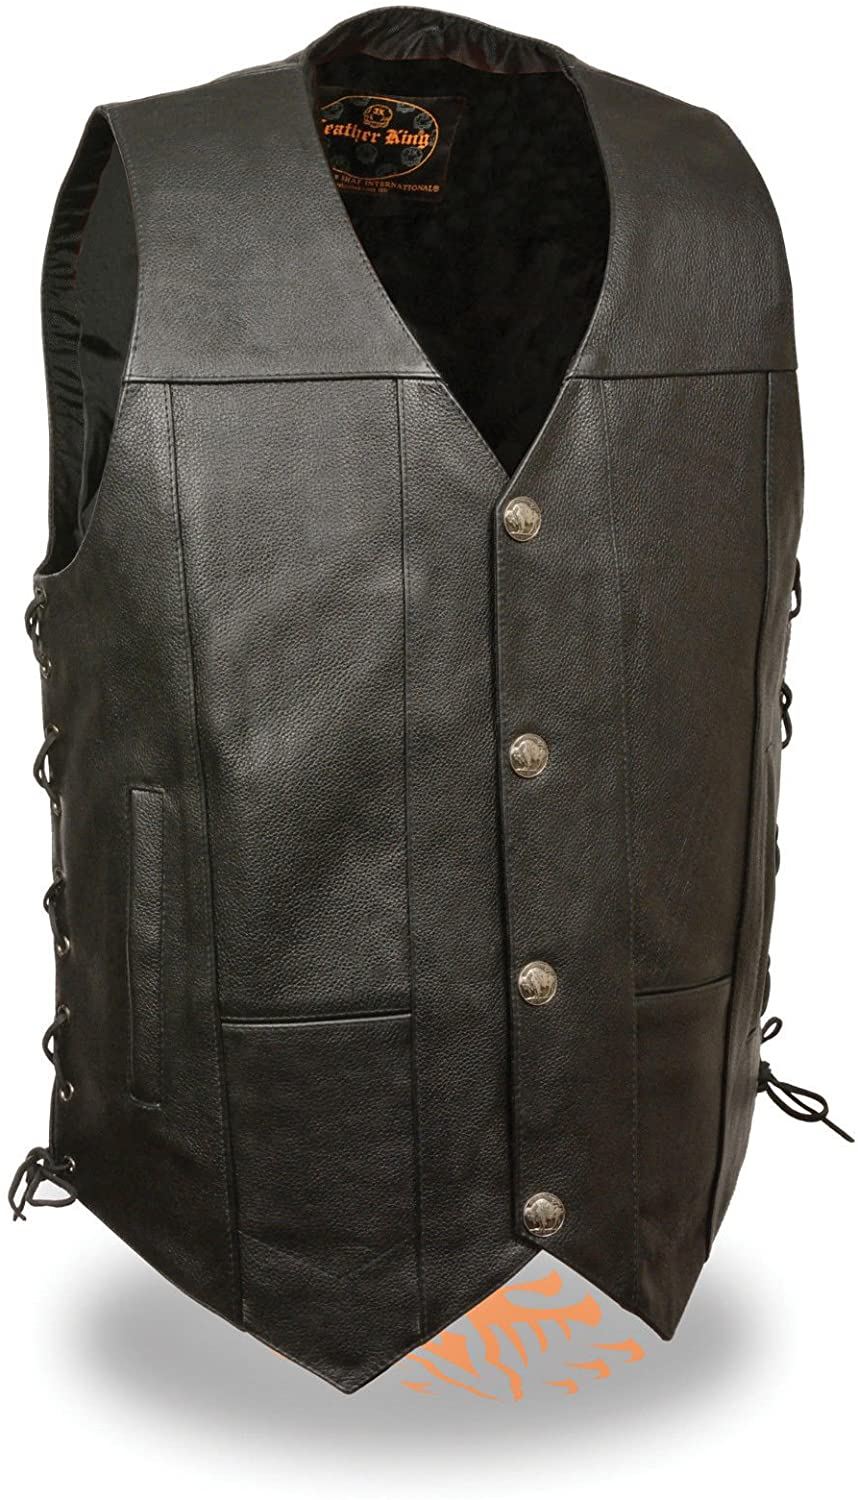 LEATHER KING Mens Motorcycle Buffalo Snap Buttons with Side Laces 2 Gun Pockets Single Panel (2XL Regular)